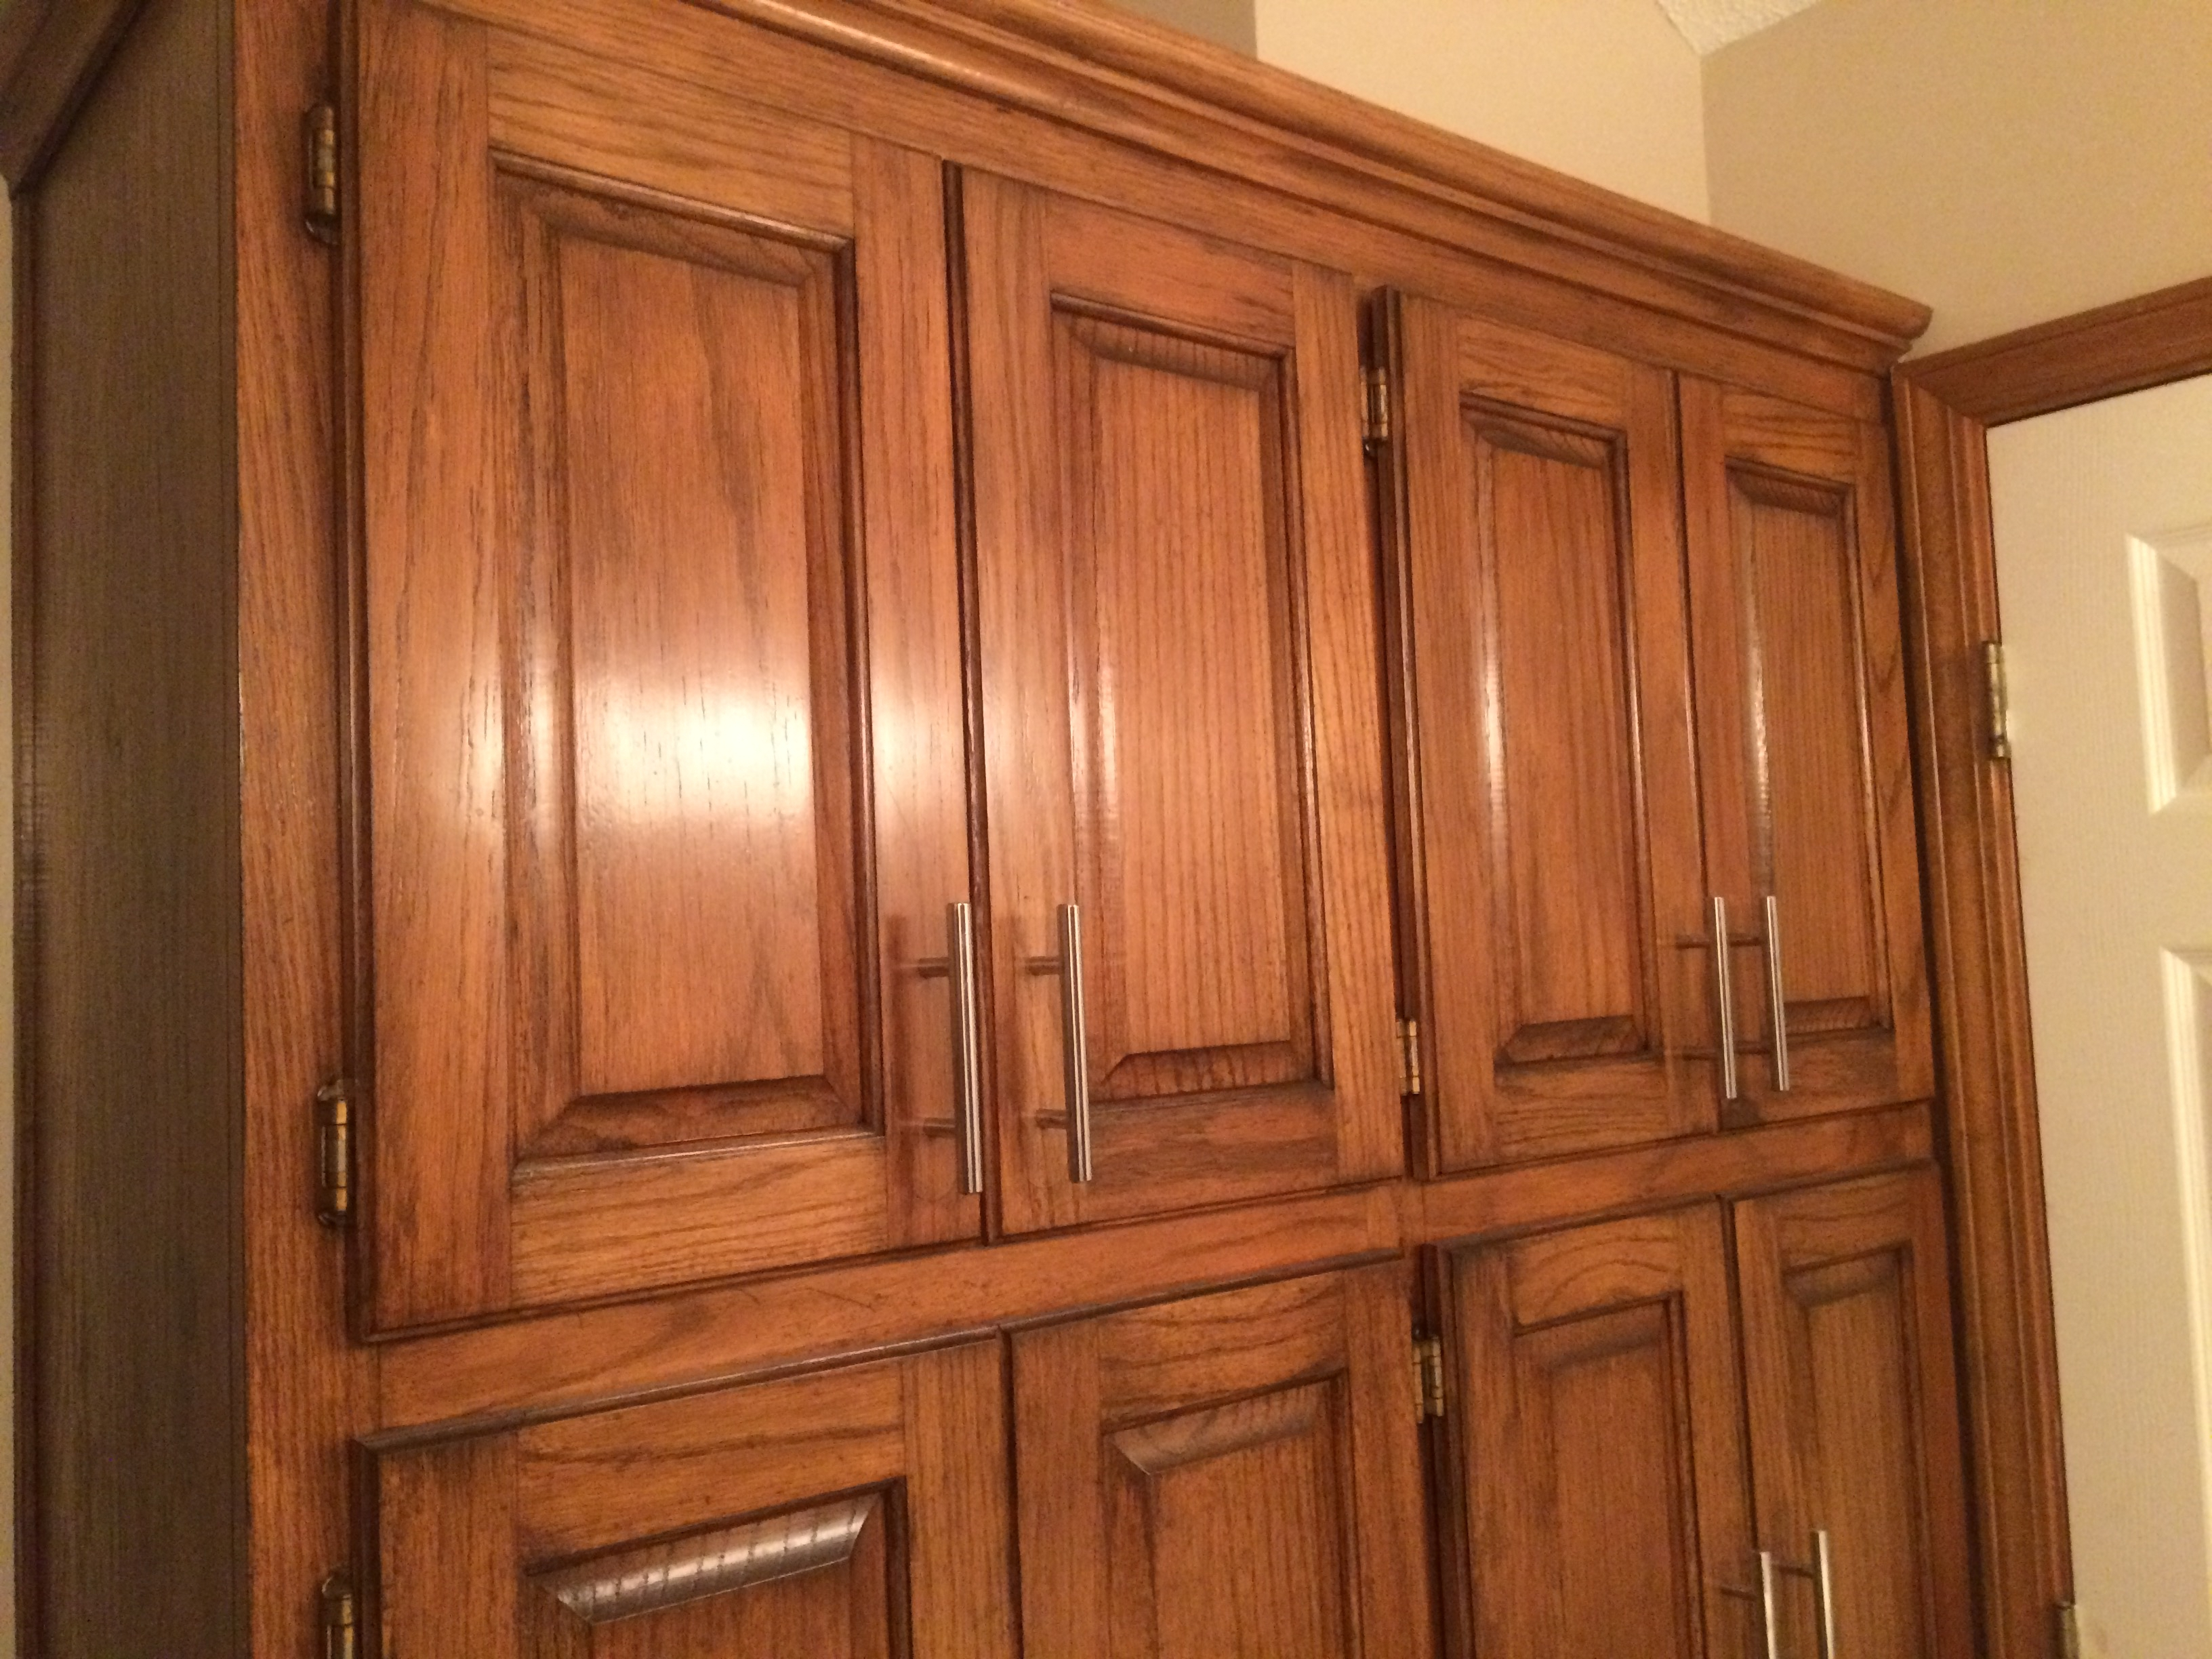 Kitchen Knobs For Oak Cabinets